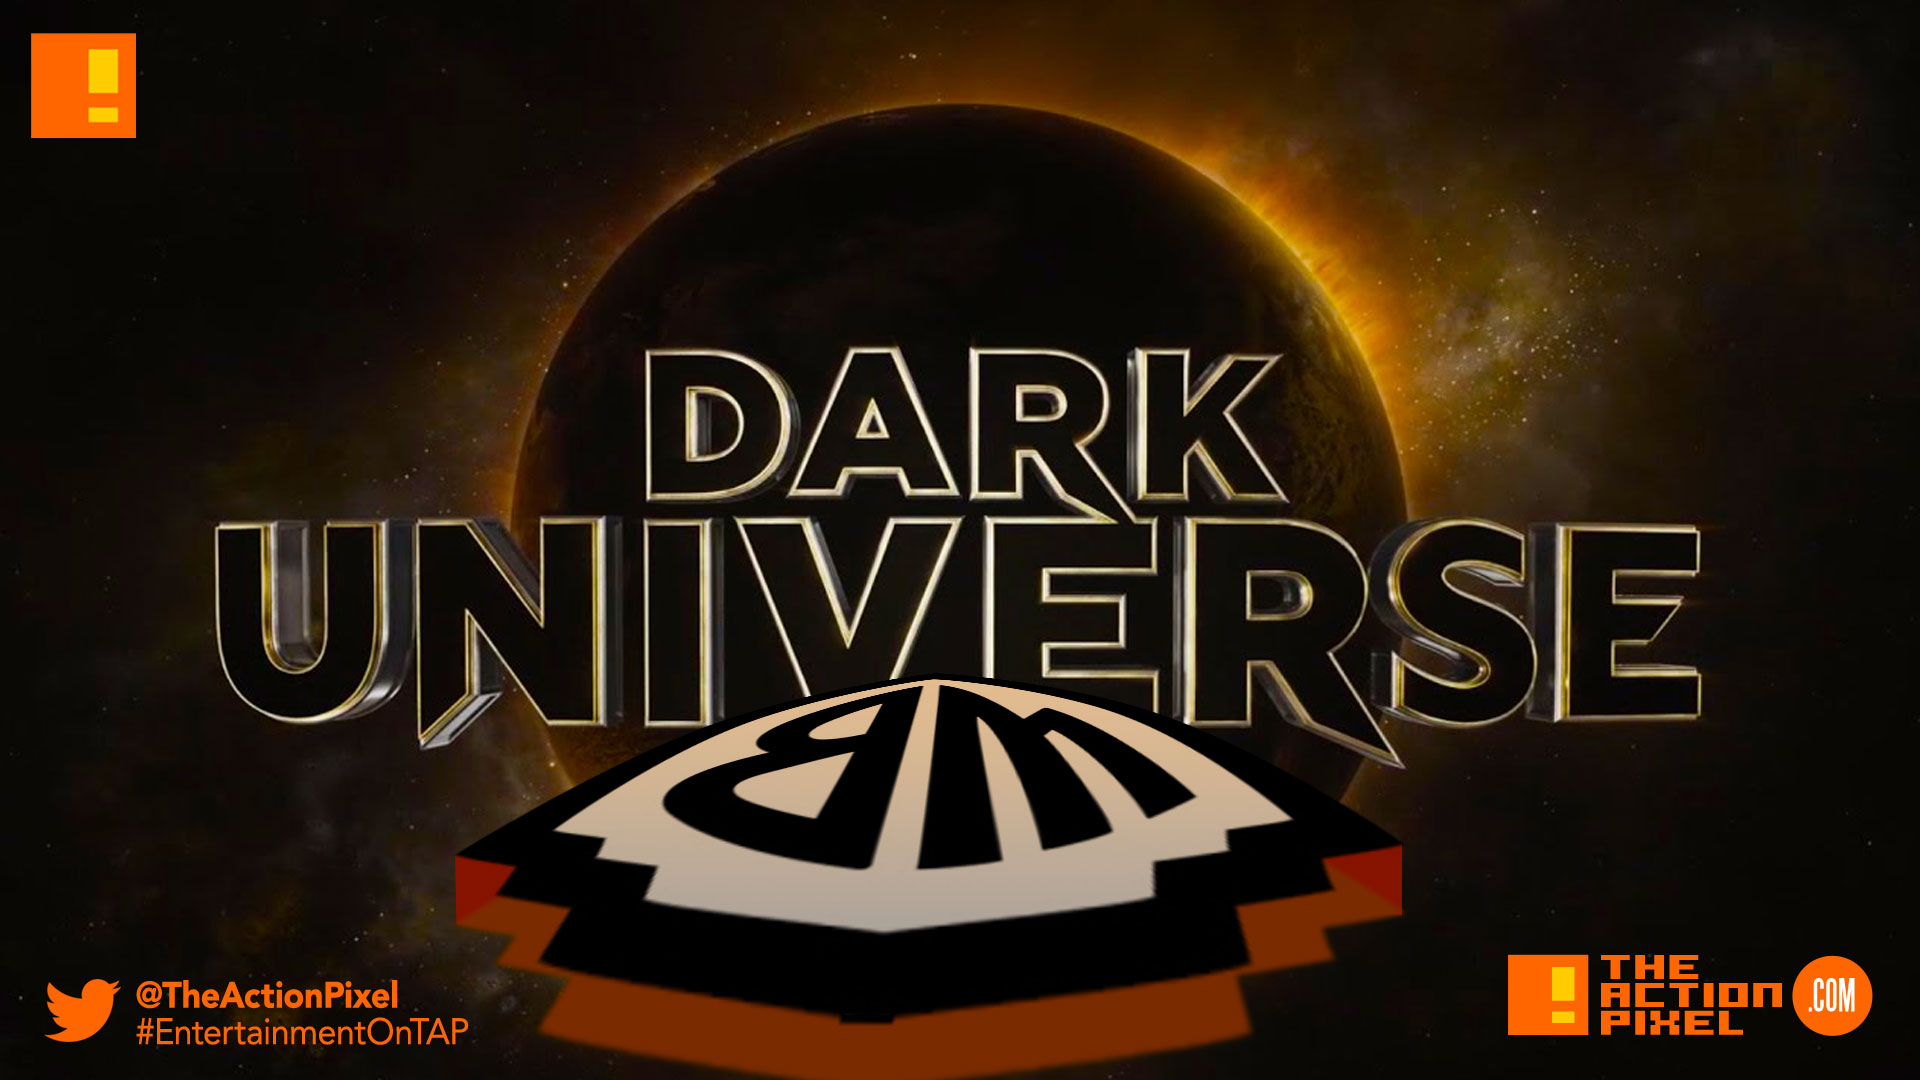 dark universe, WB, the action pixel, dc comics, jld, justice league dark, the action pixel, entertainment on tap